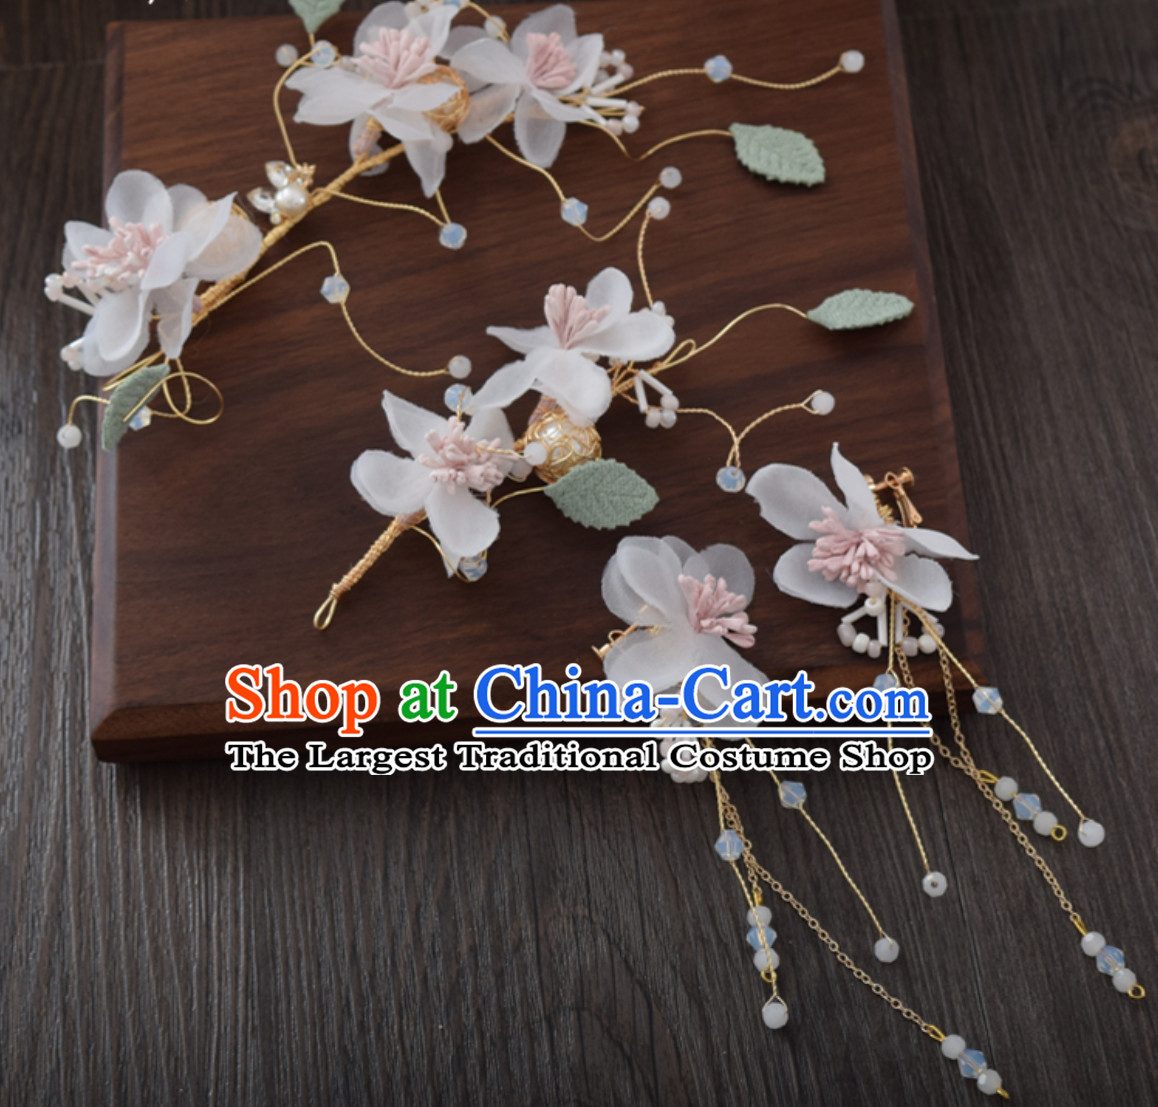 Clasical Handmade Flower Head Wear Garland Hair Jewelry and Earrings for Women